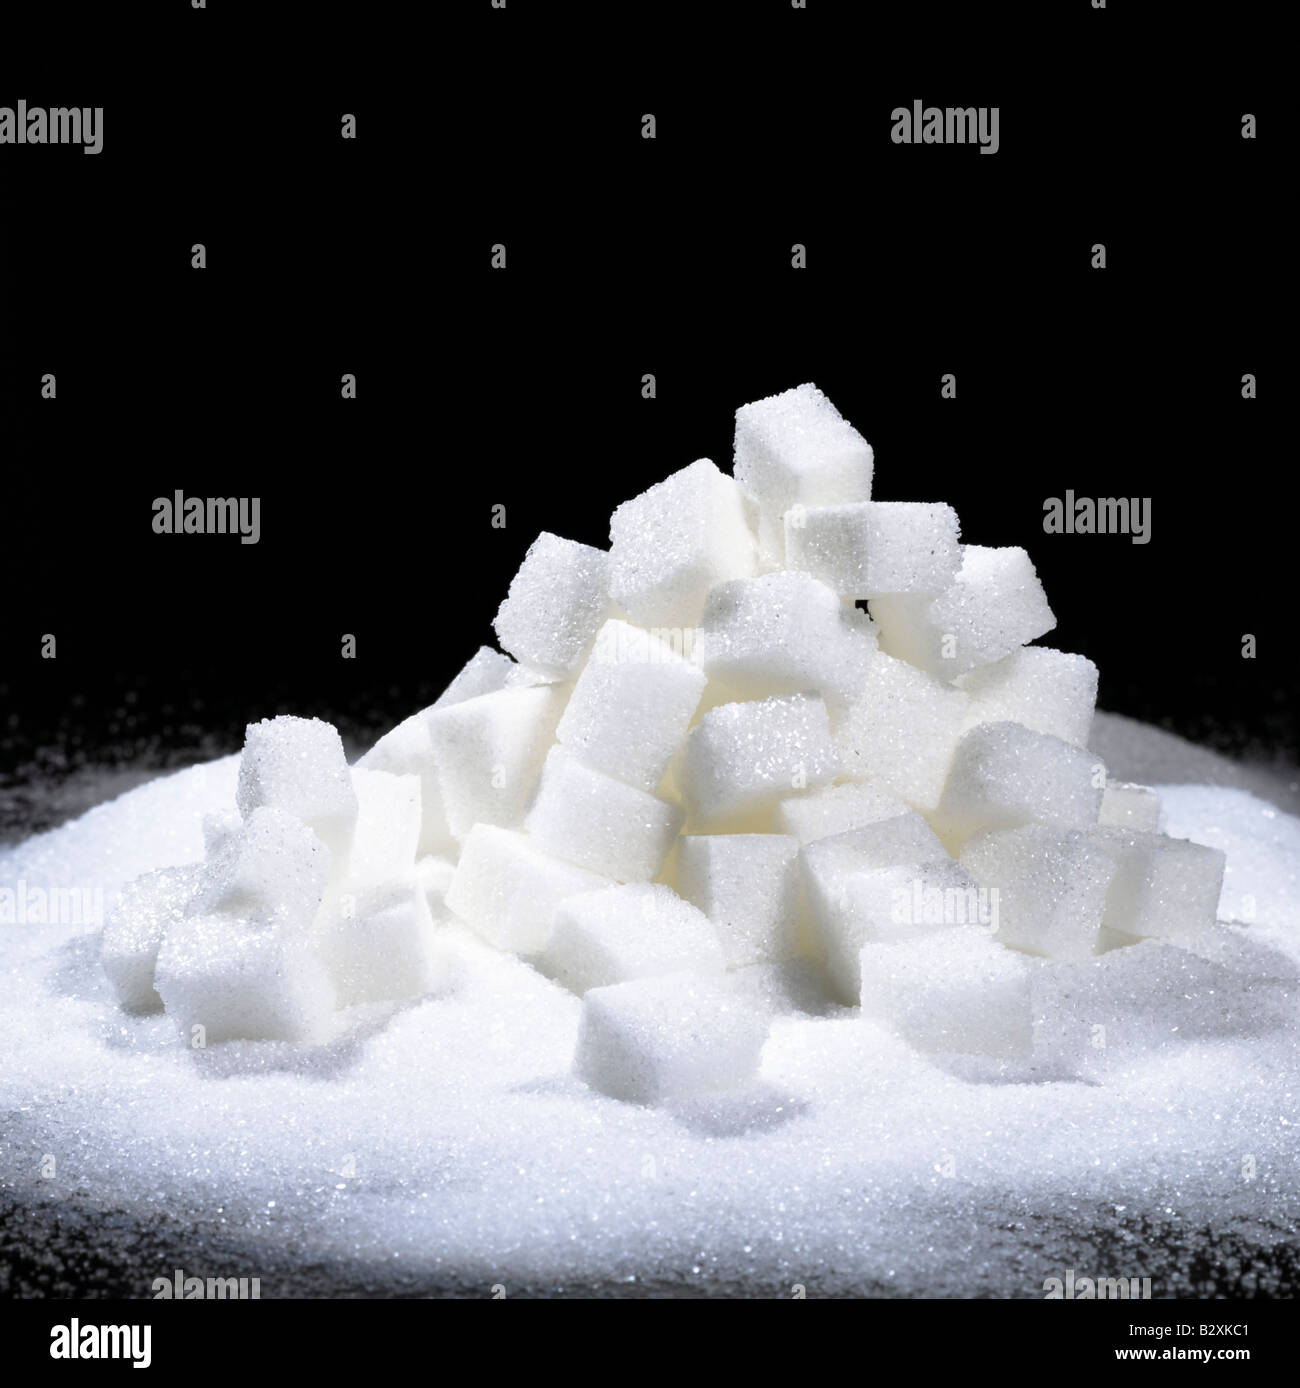 a pile of sugar cubes Germany - Stock Image